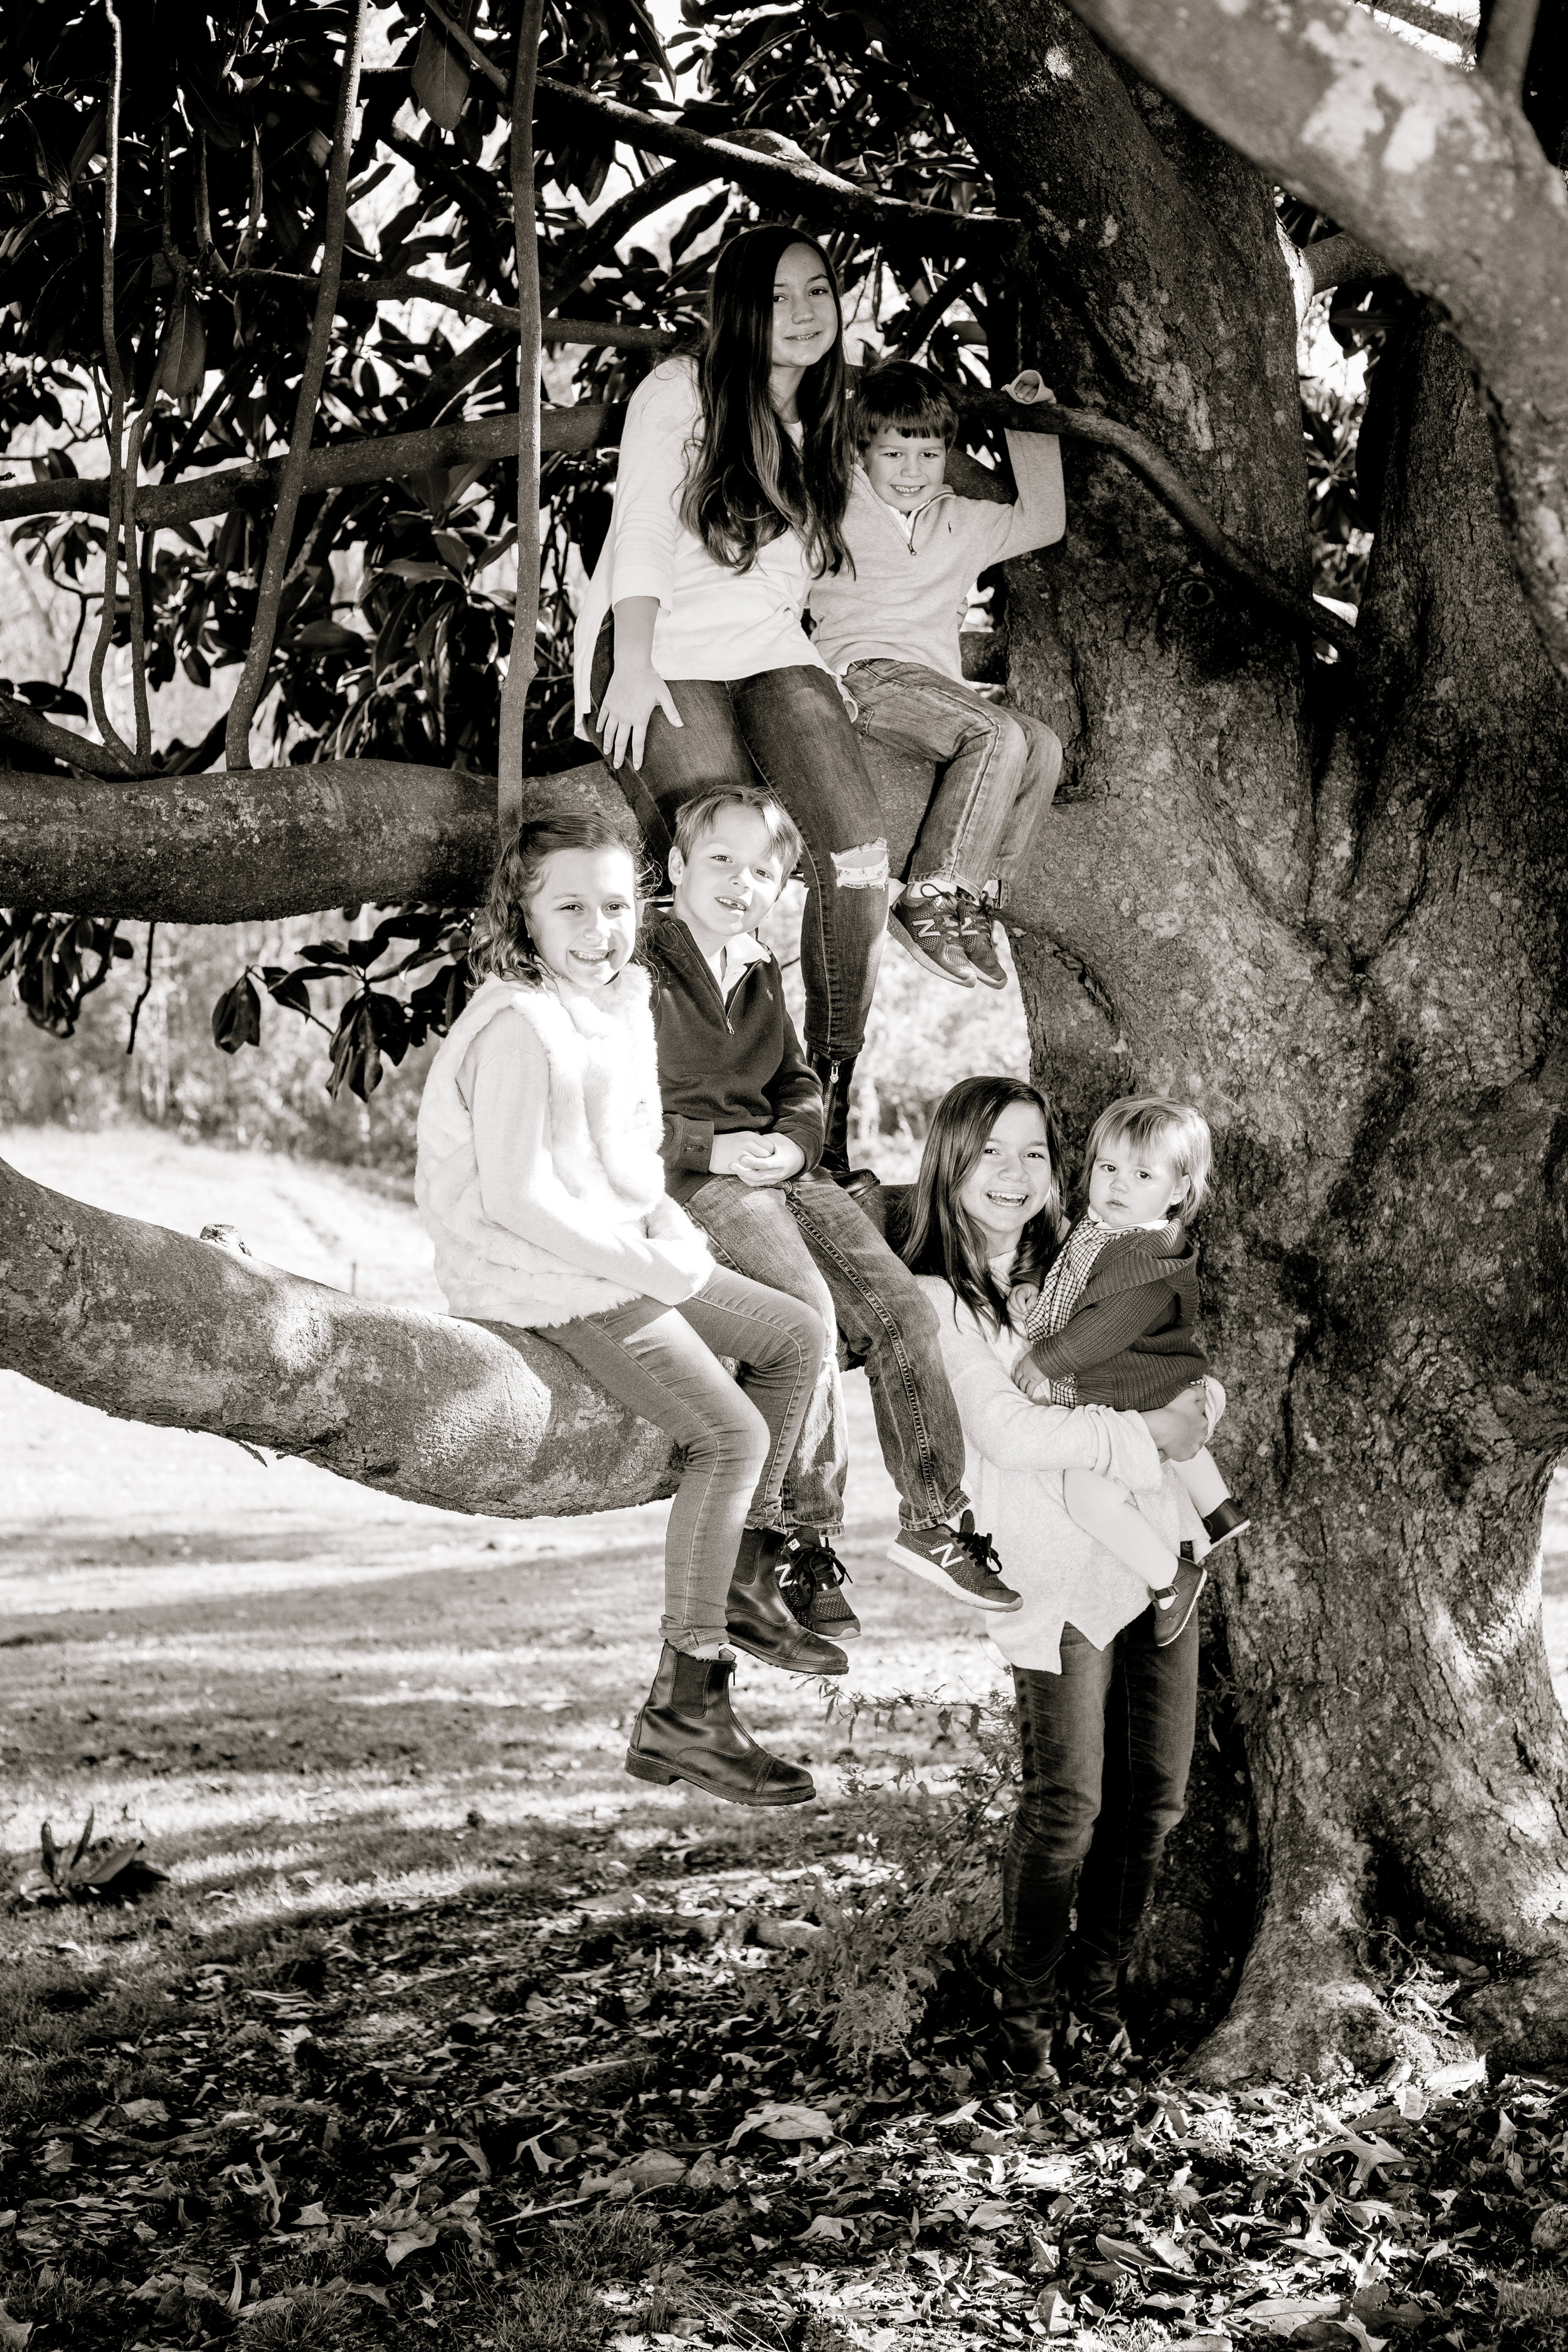 Their favorite climbing tree!